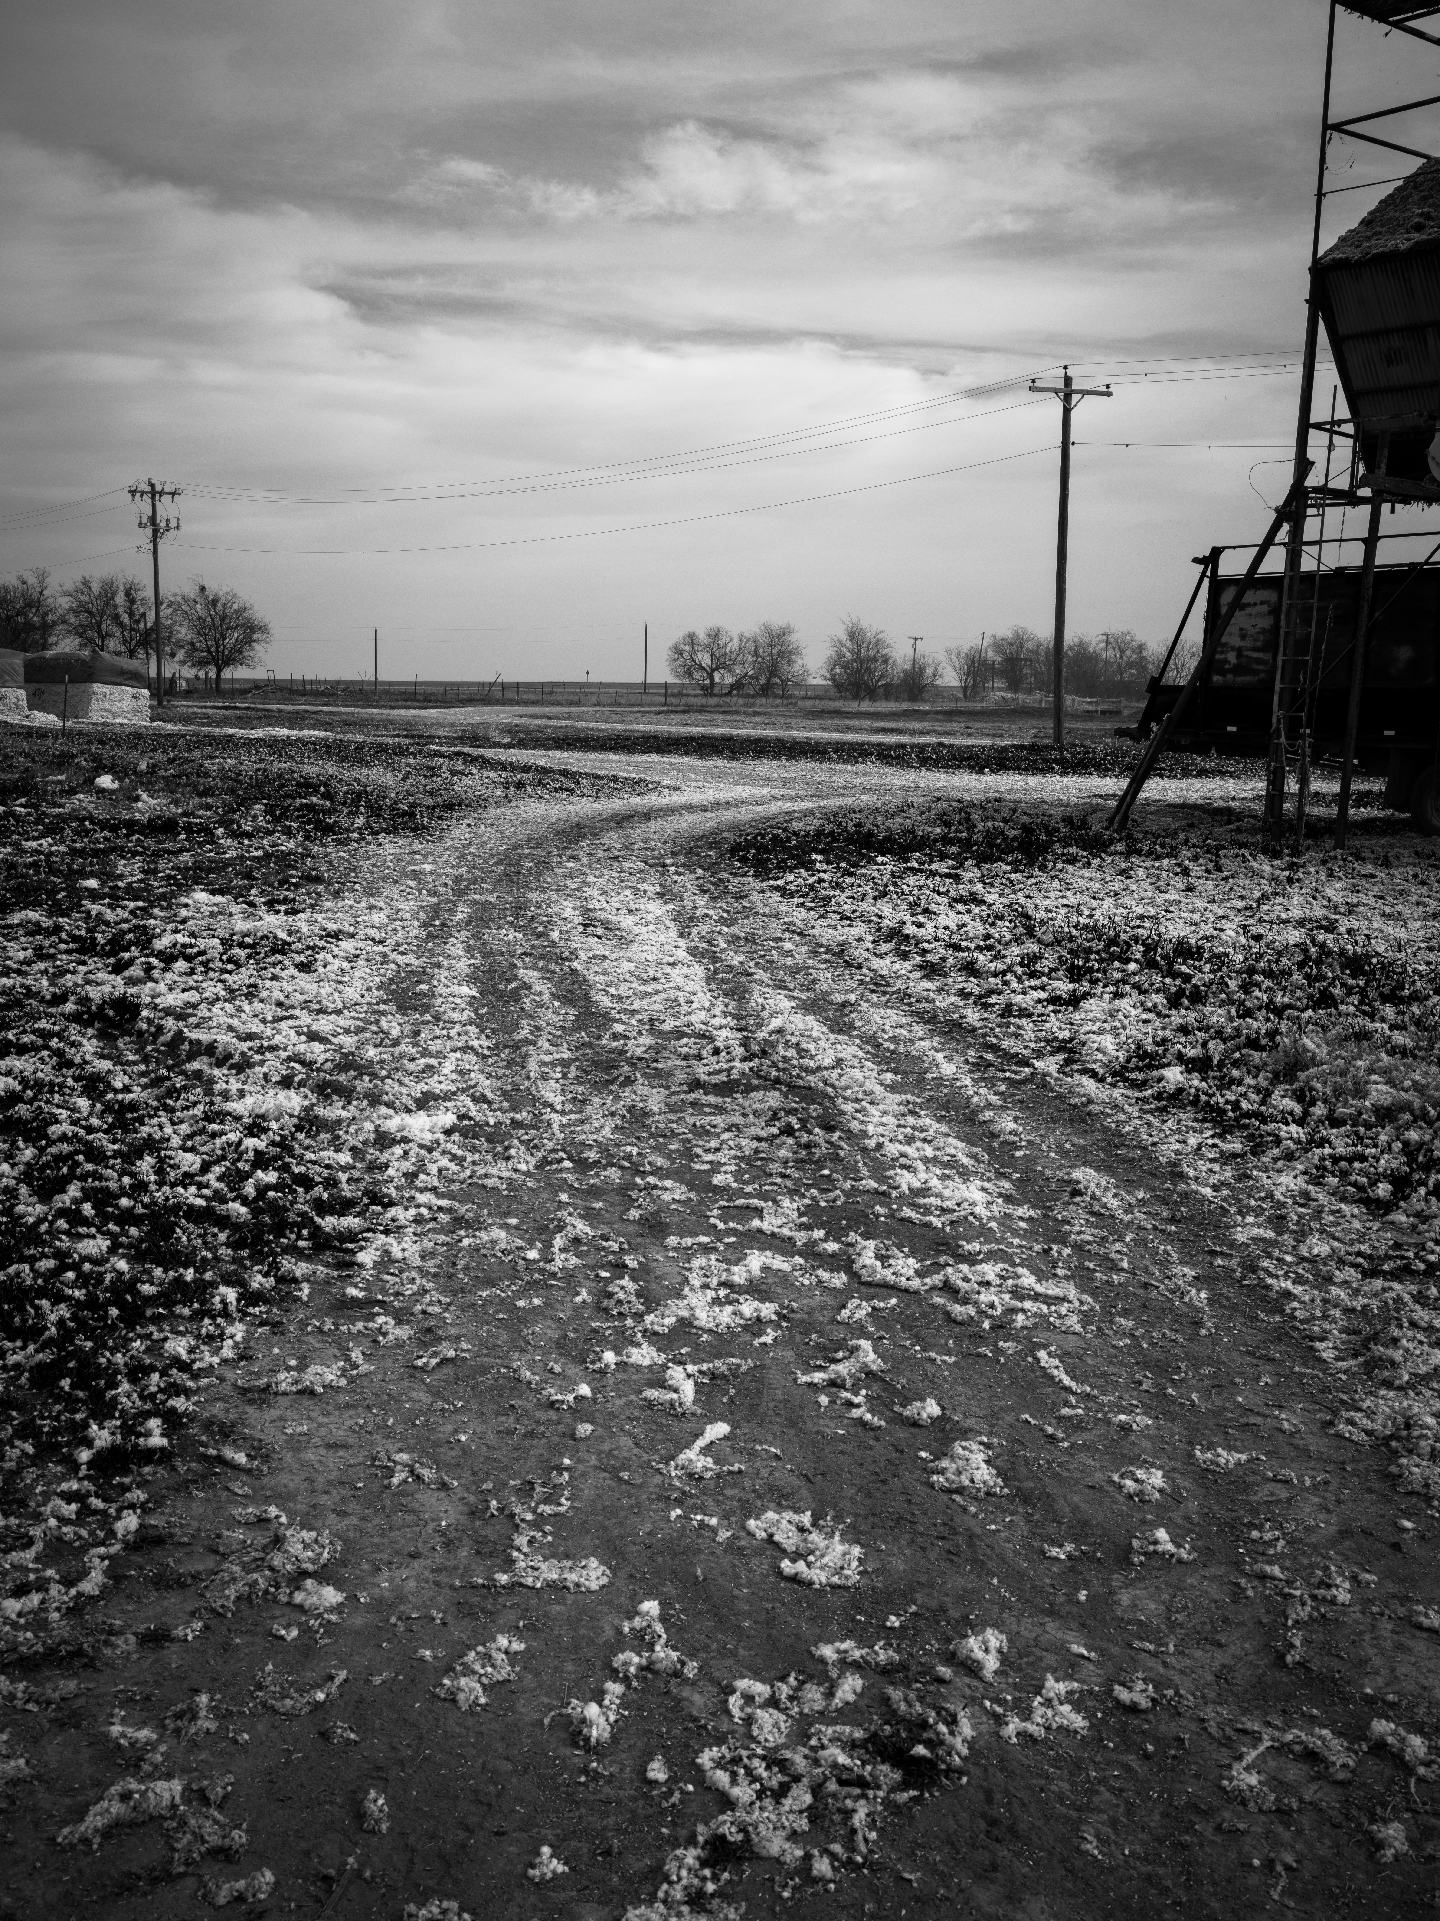 Road with cotton during the harvest Norton County, Texas 2016   Made with Hasselblad X1D medium format digital camera